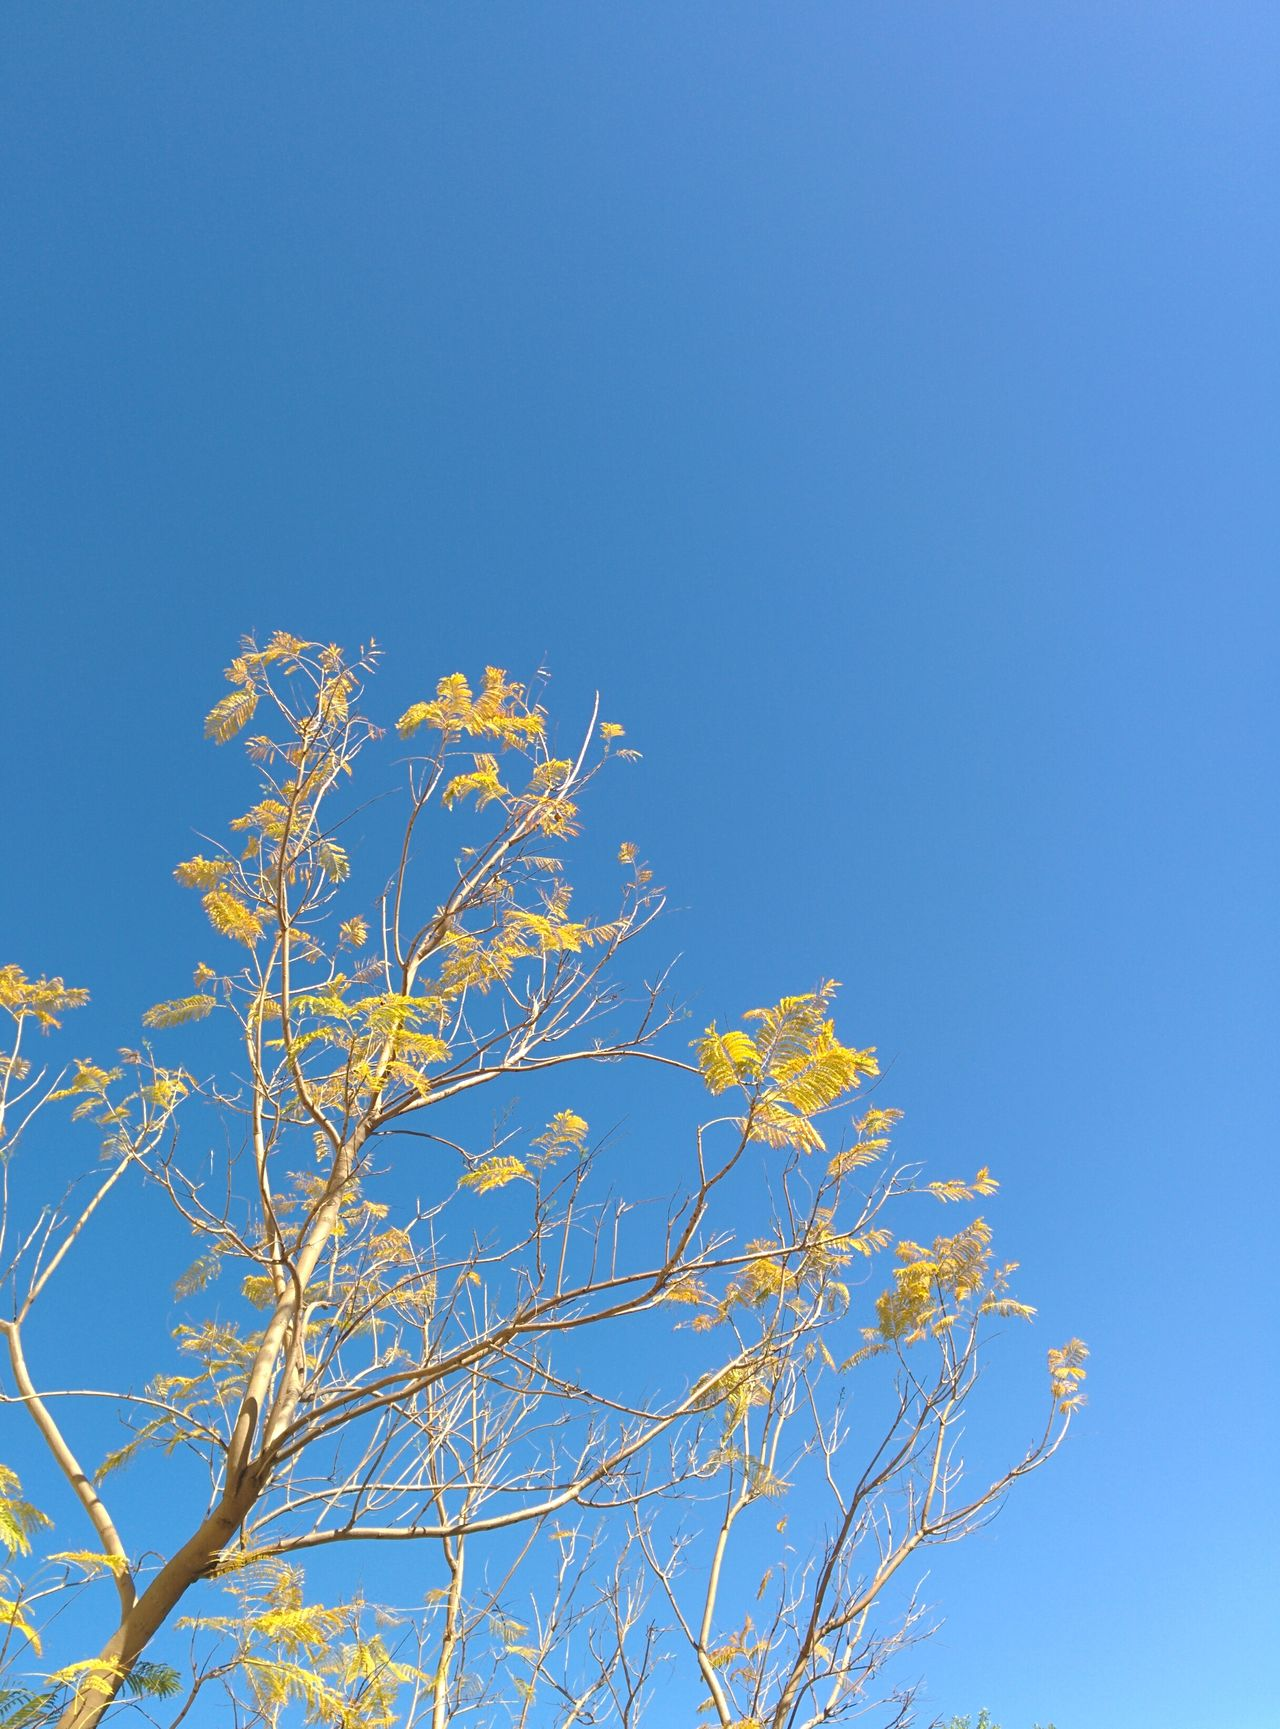 Blue and Yellow Nature Blue Sky Low Angle View Nature Clear Sky Tree Flower Beauty In Nature Branch Outdoors Close-up Day No People Bratini Leonidas Downtown City Orlando Clear Sky Beauty In Nature